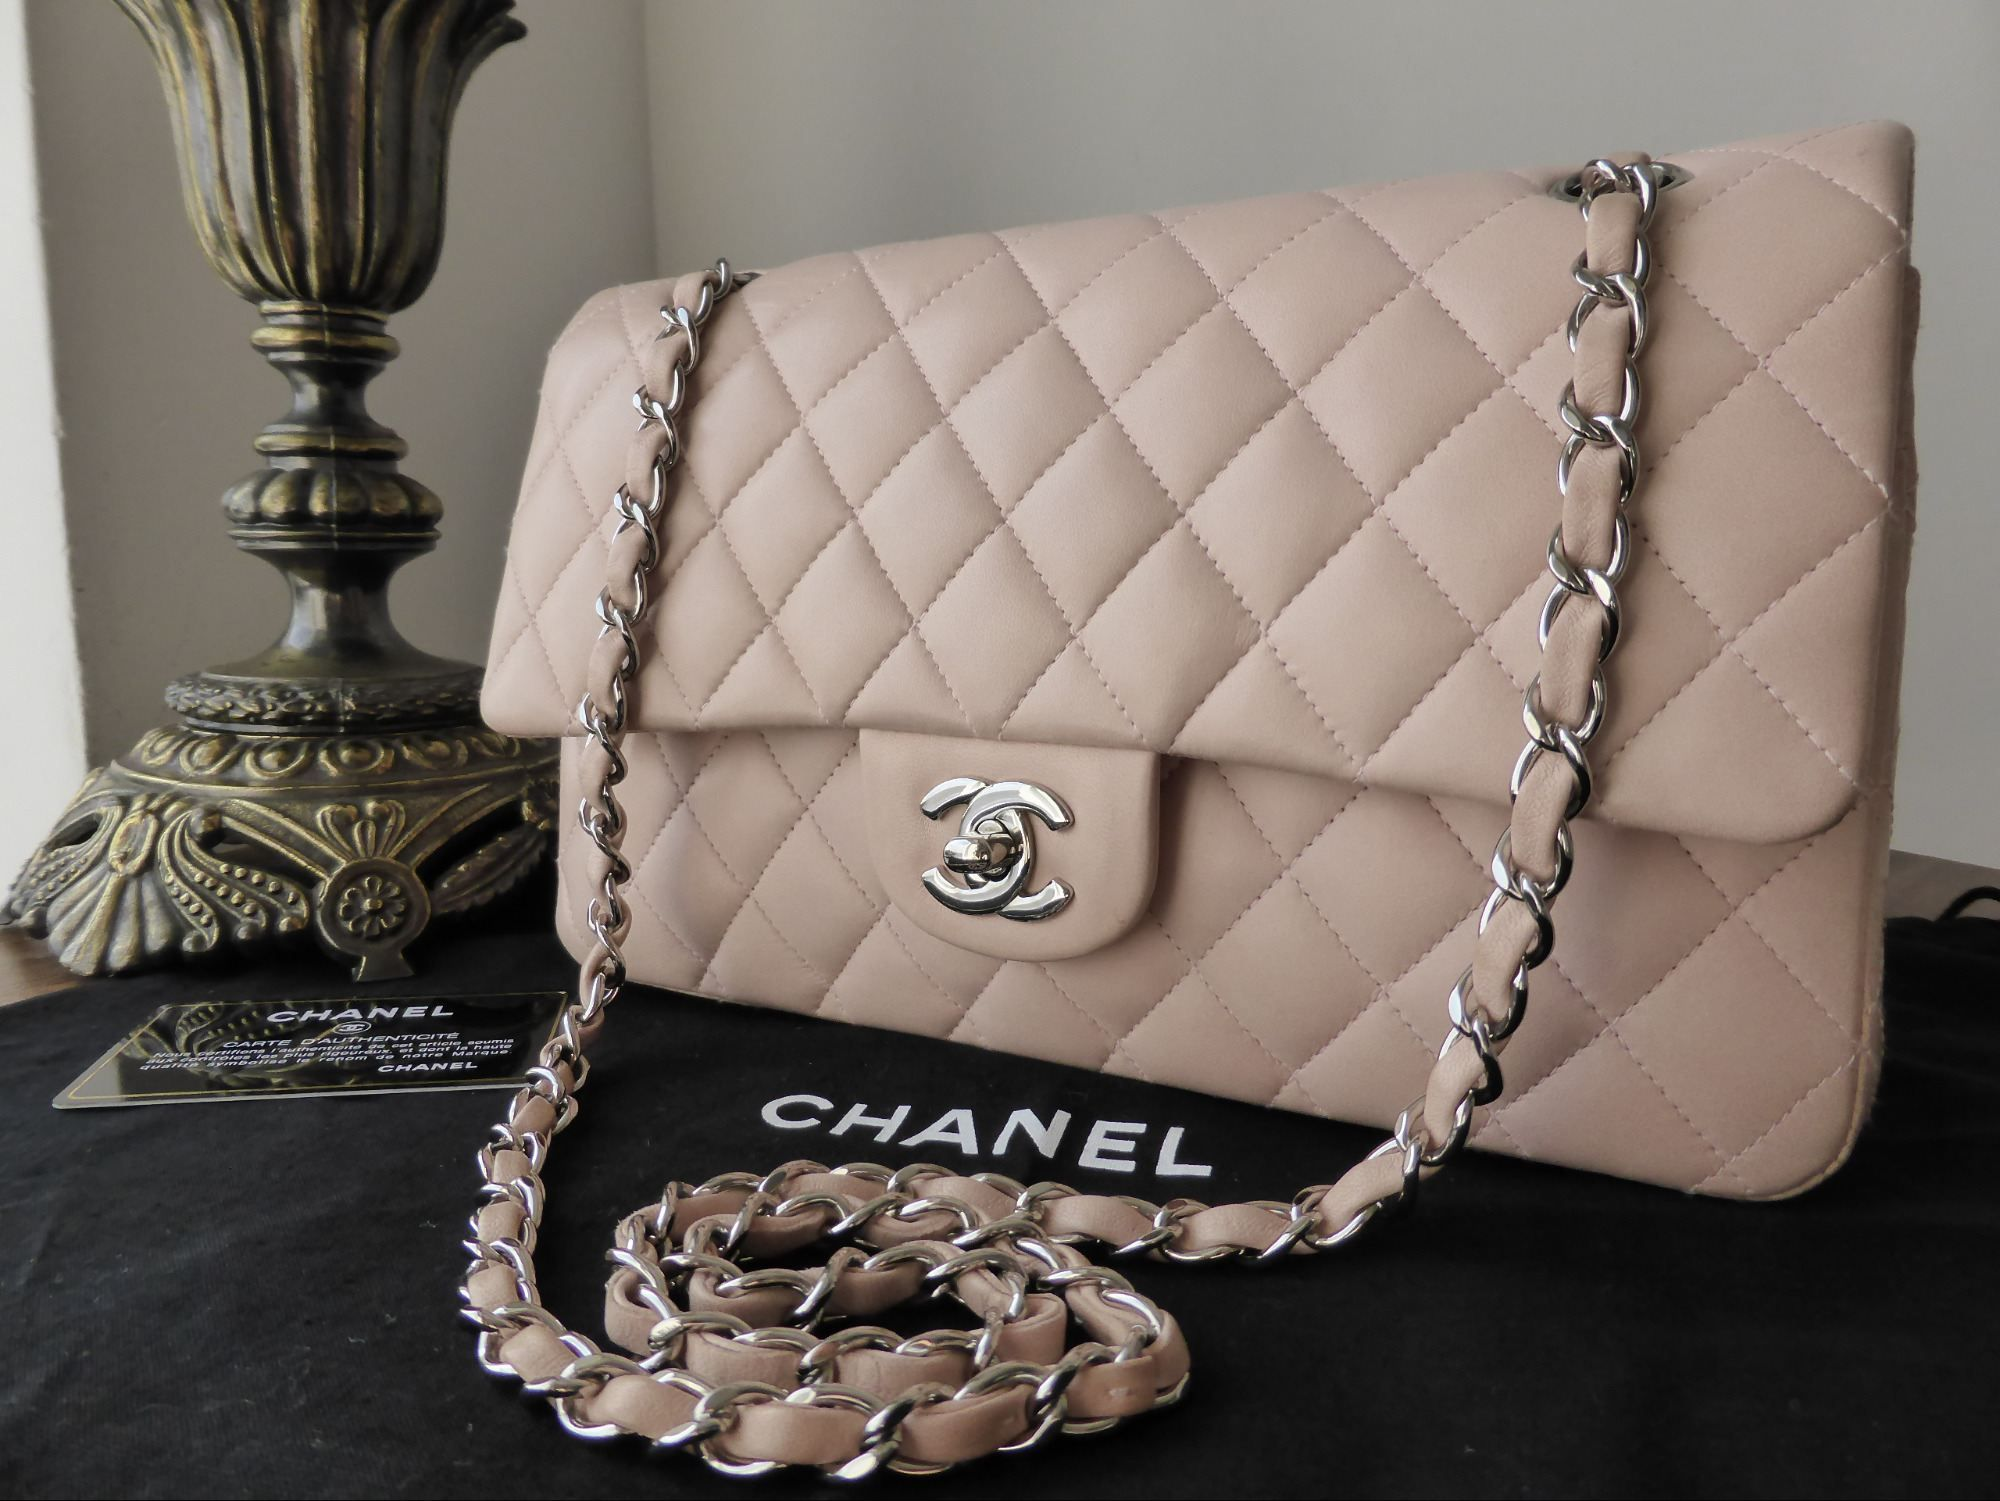 b1ccc60ffd7879 Chanel Timeless Classic 2.55 Medium Flap Bag in Nude Pink Lambskin with  Silver Hardware >